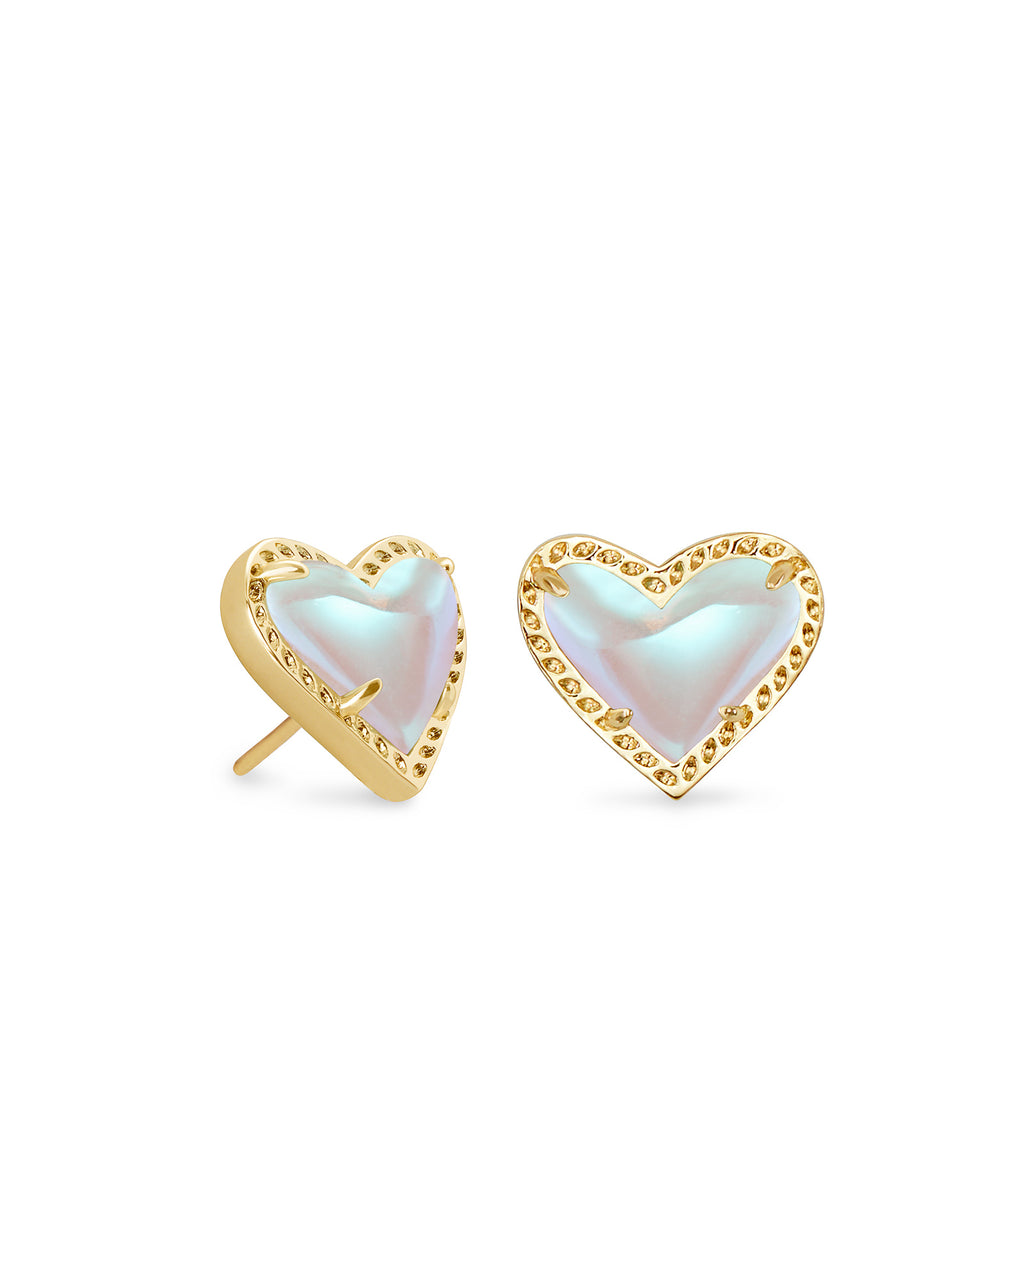 Ari Heart Stud Earrings - Gold